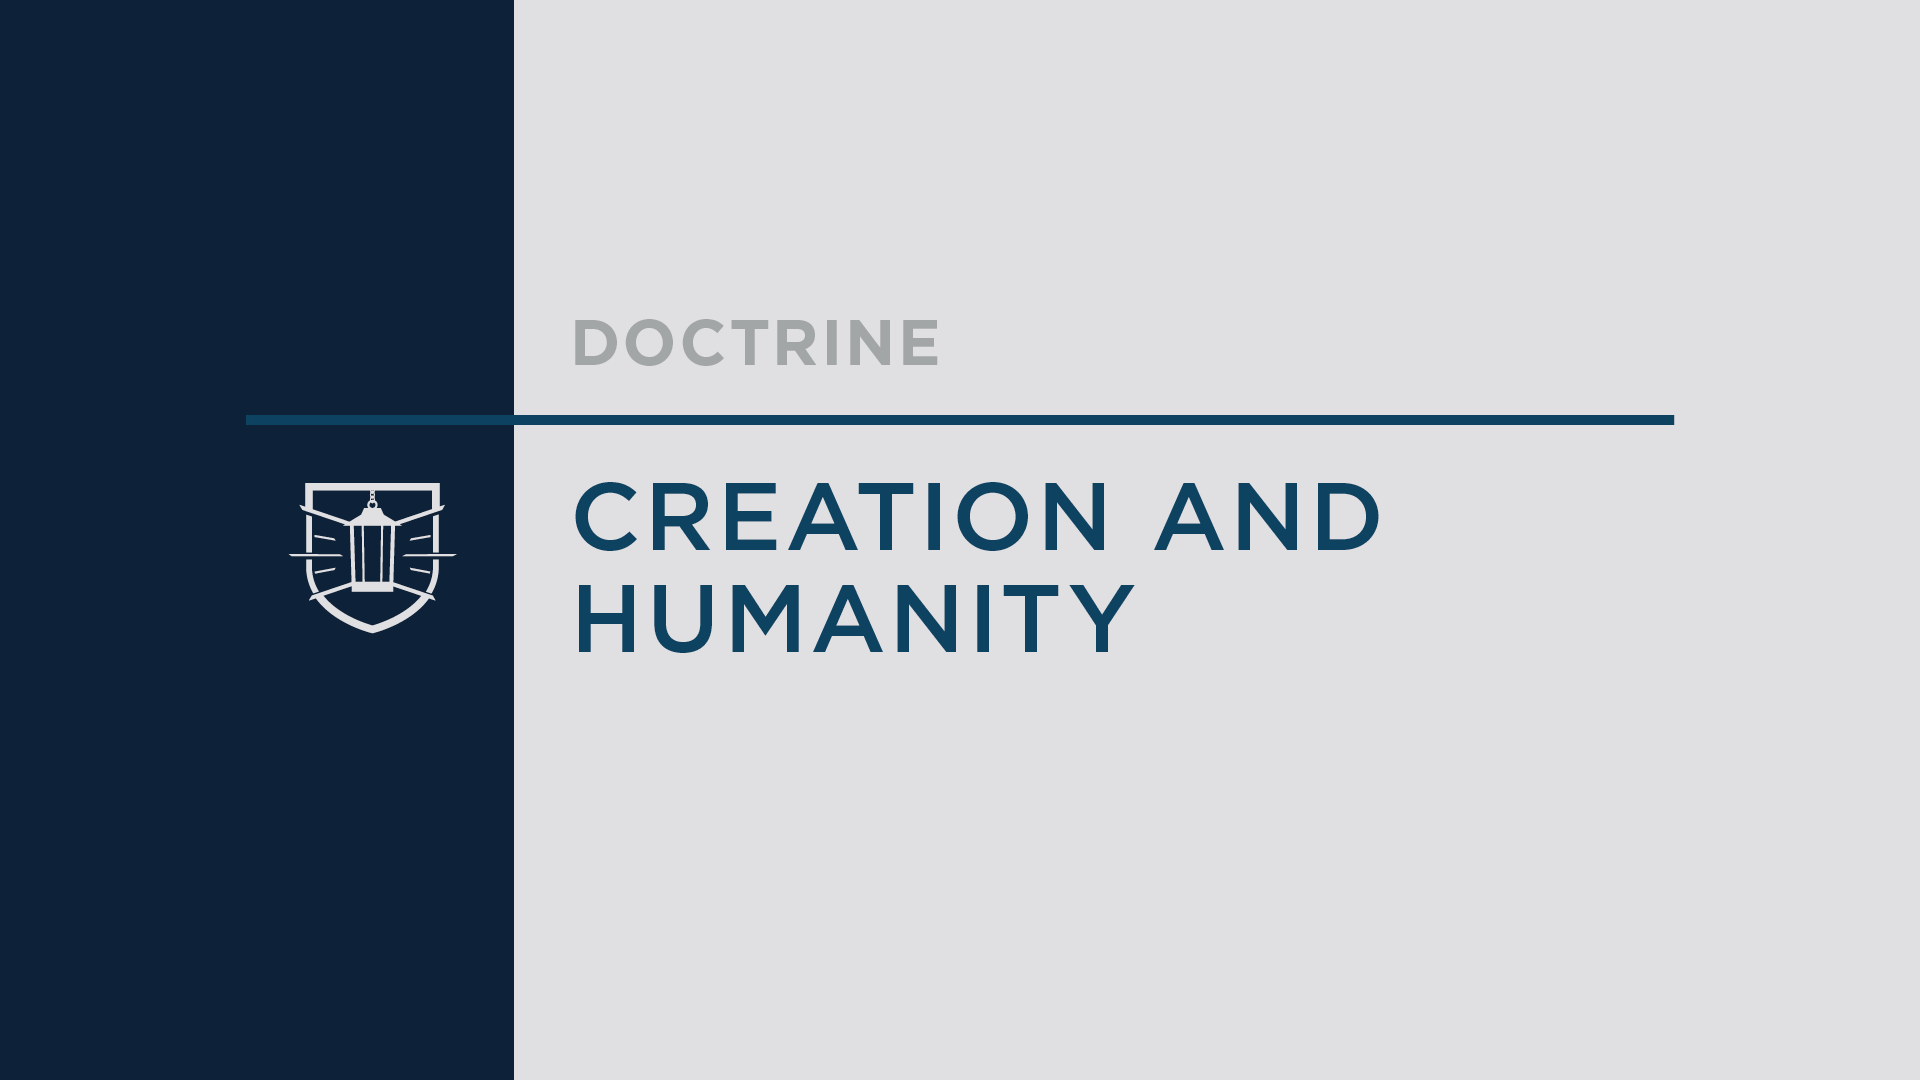 Doctrine 4: Creation and Humanity